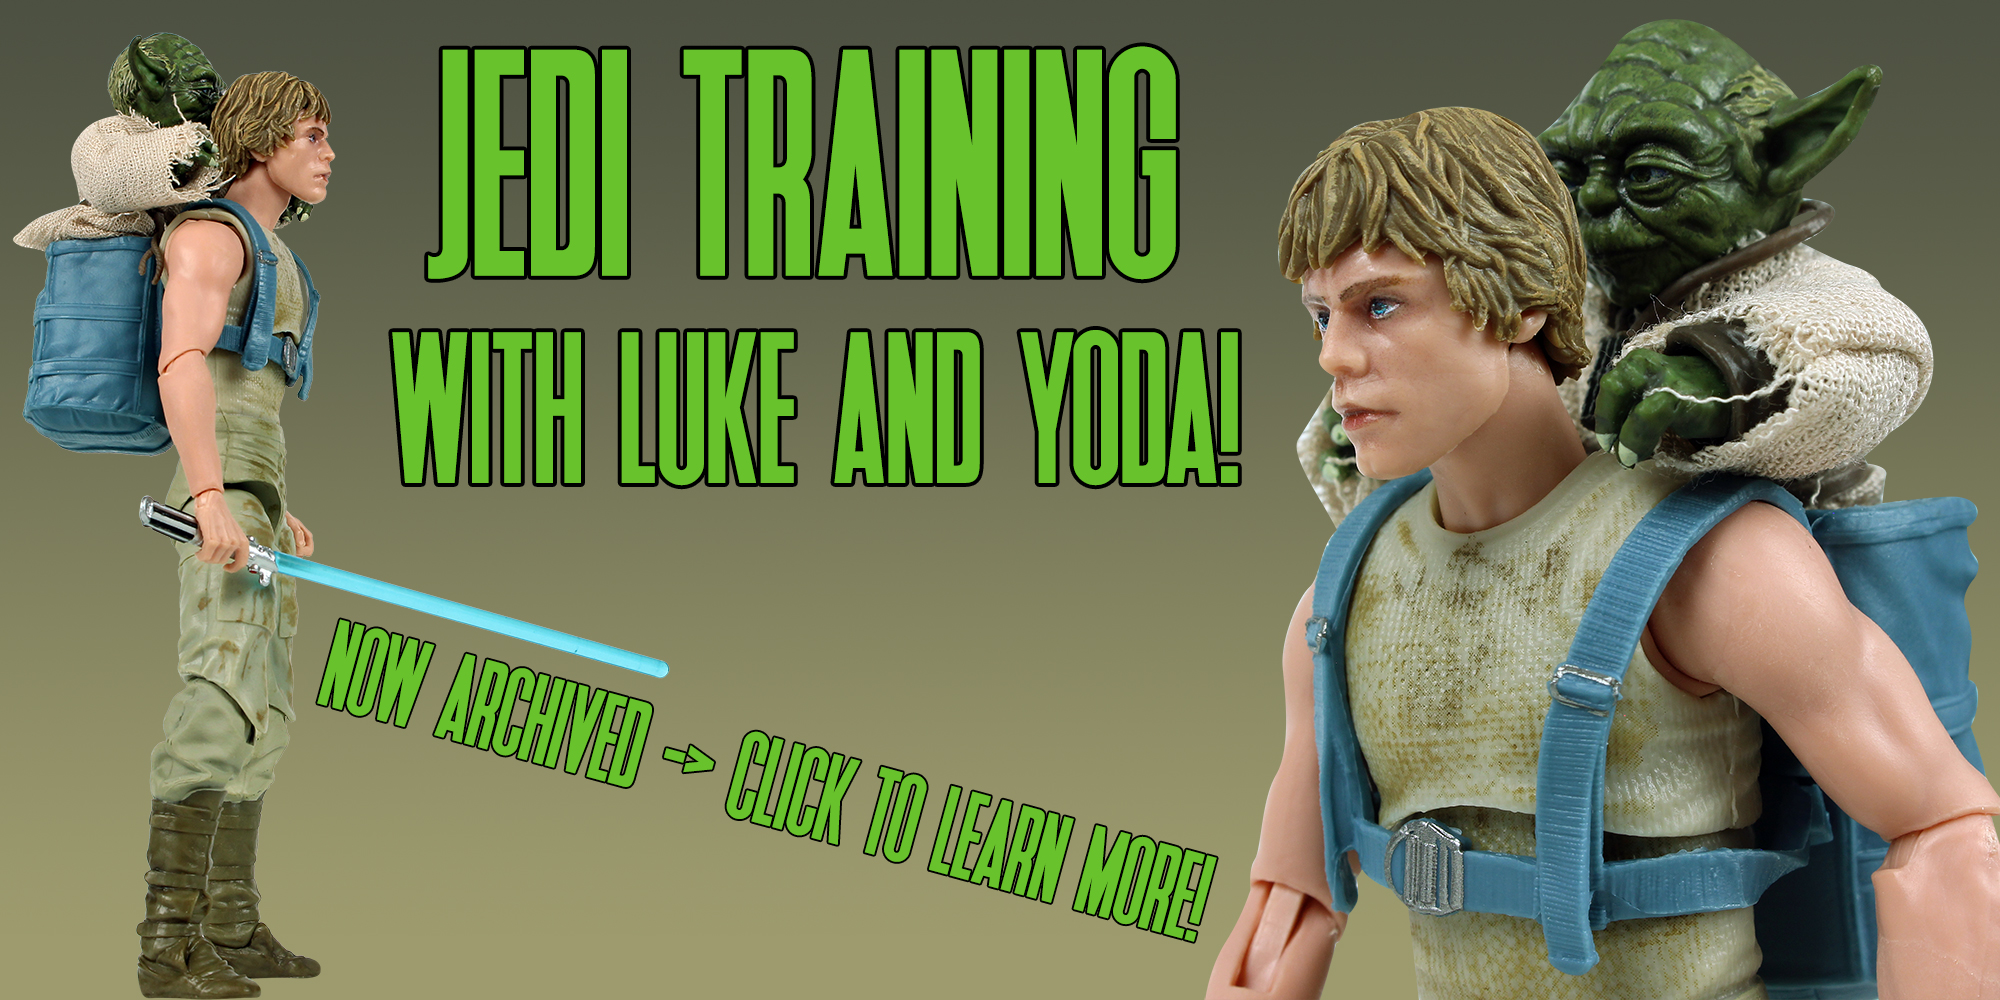 Black Series Jedi Training